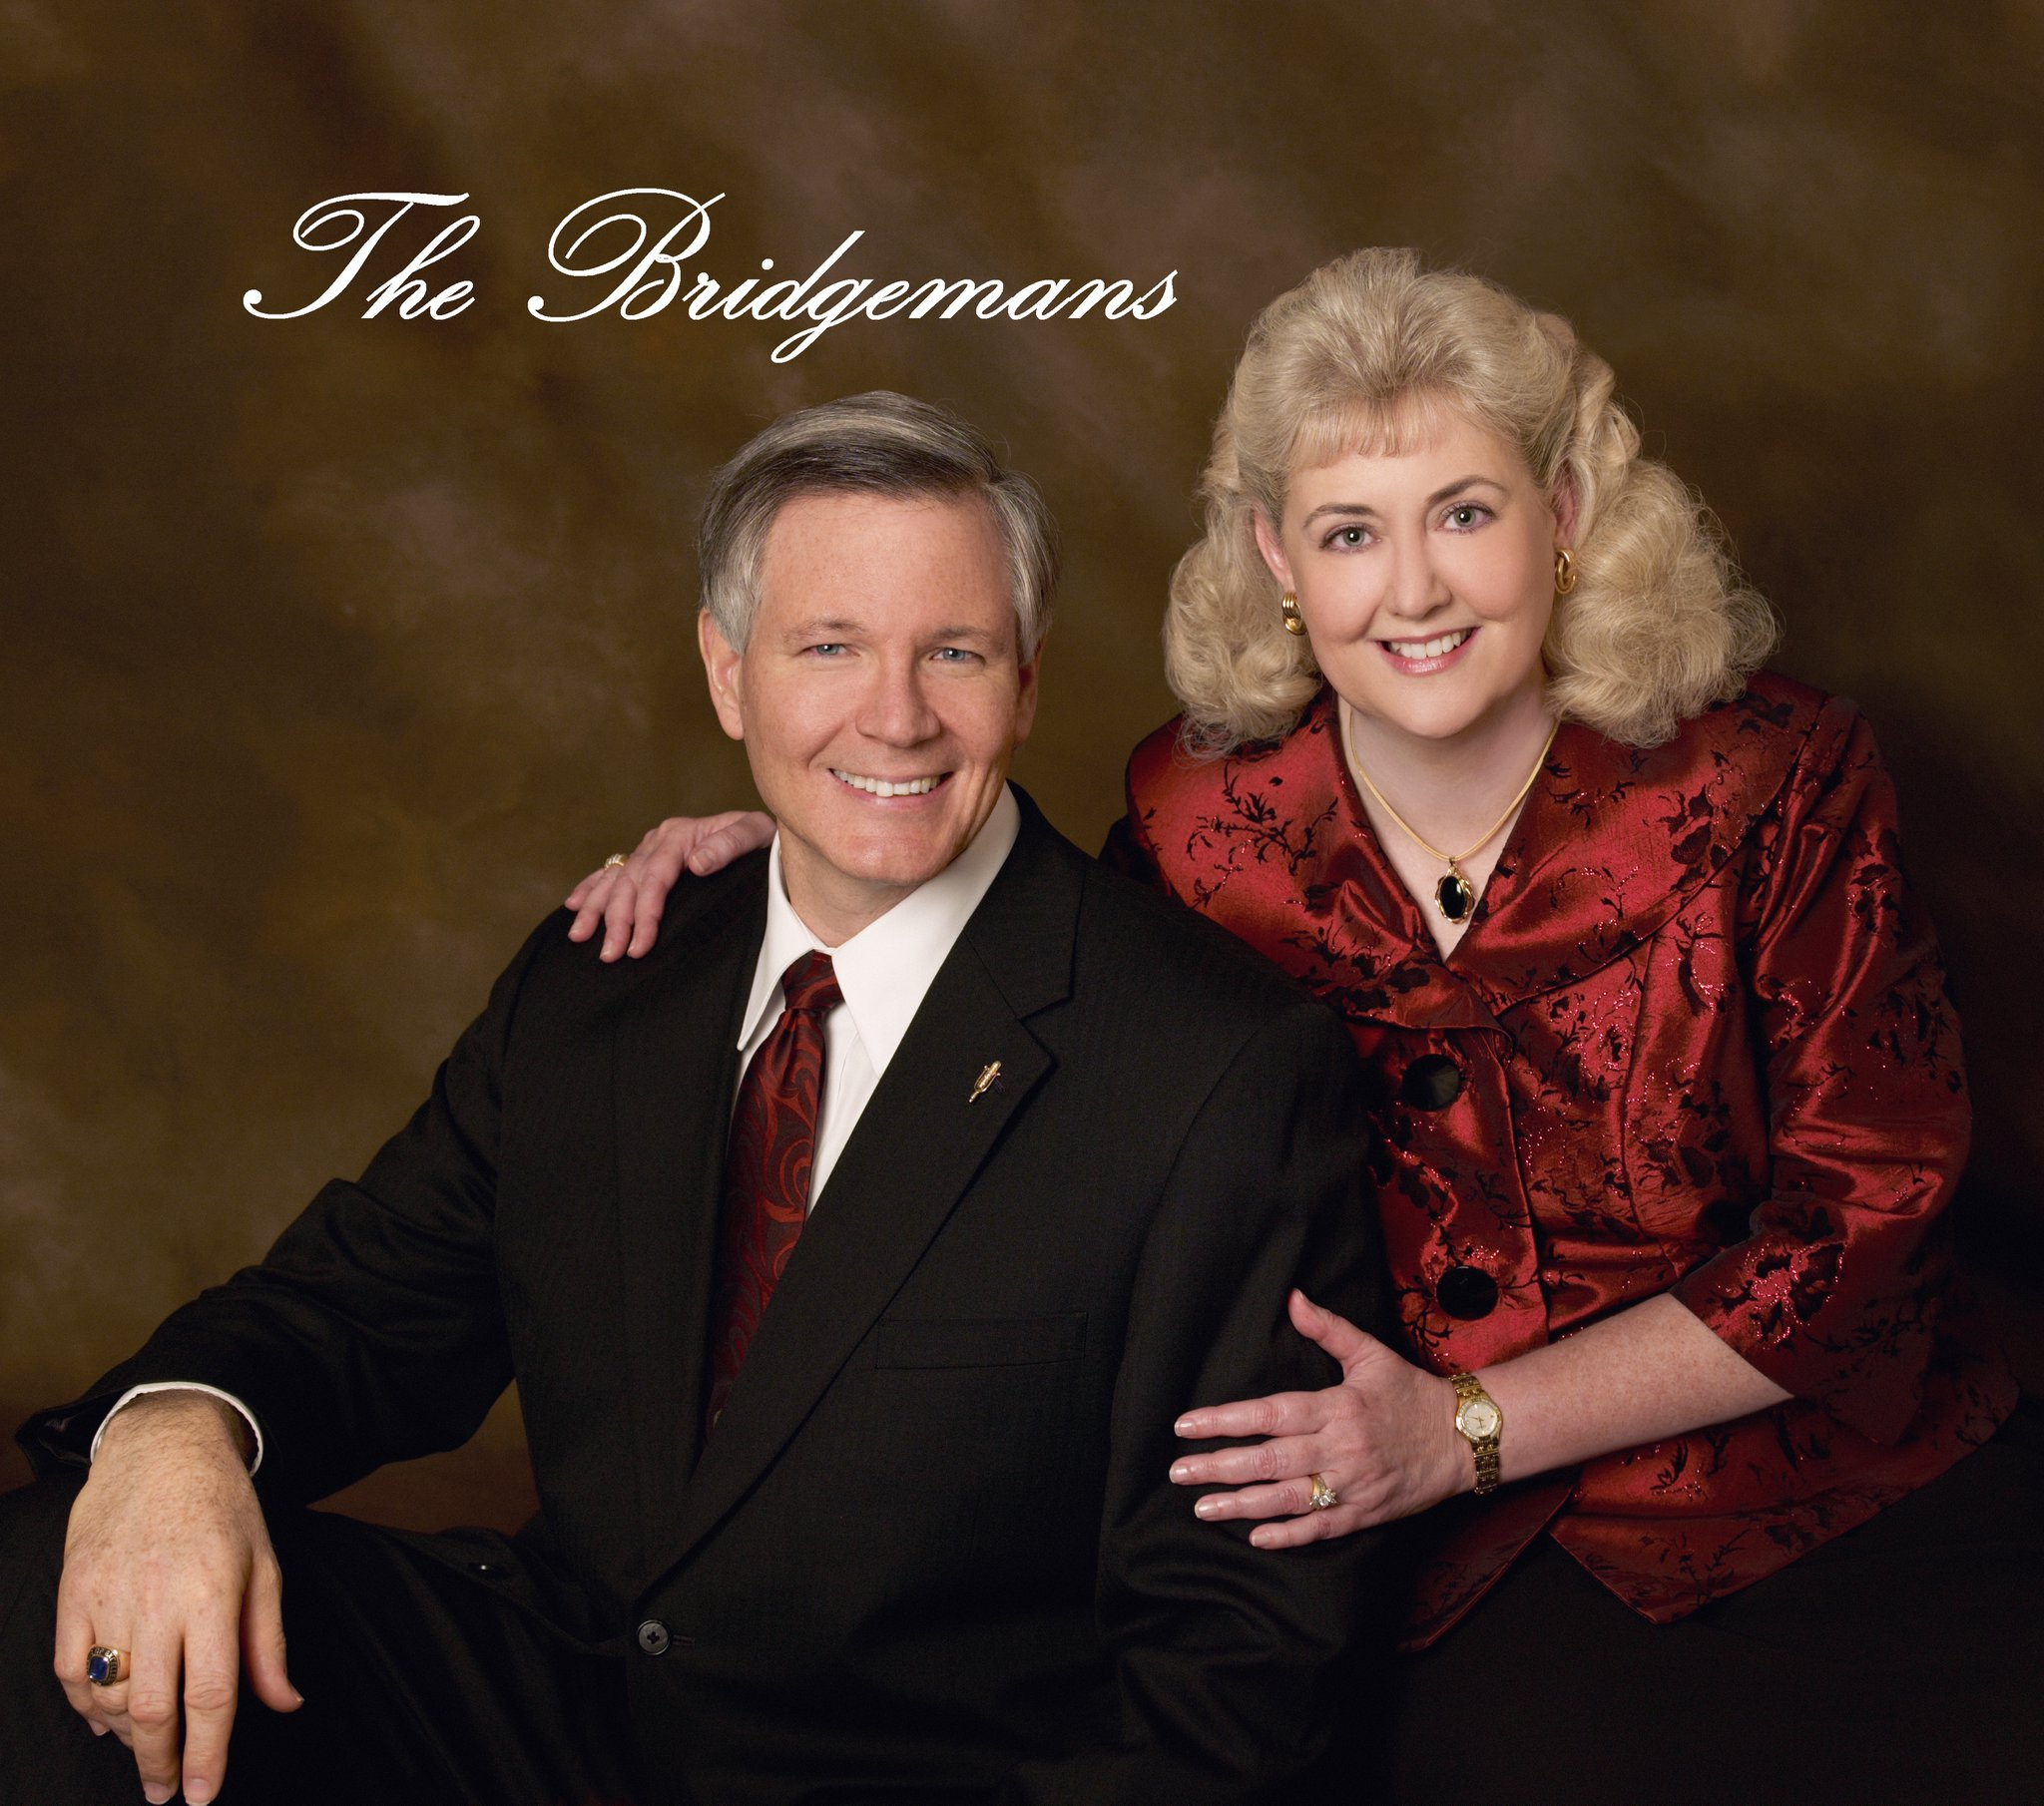 The Bridgemans